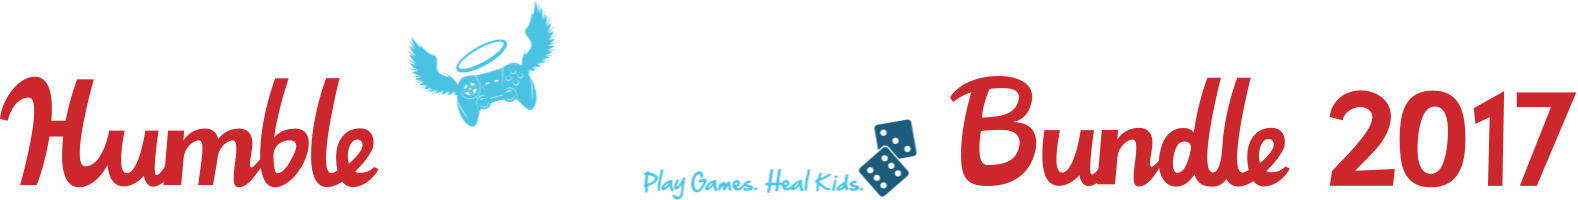 Humble Extra Life Bundle 2017